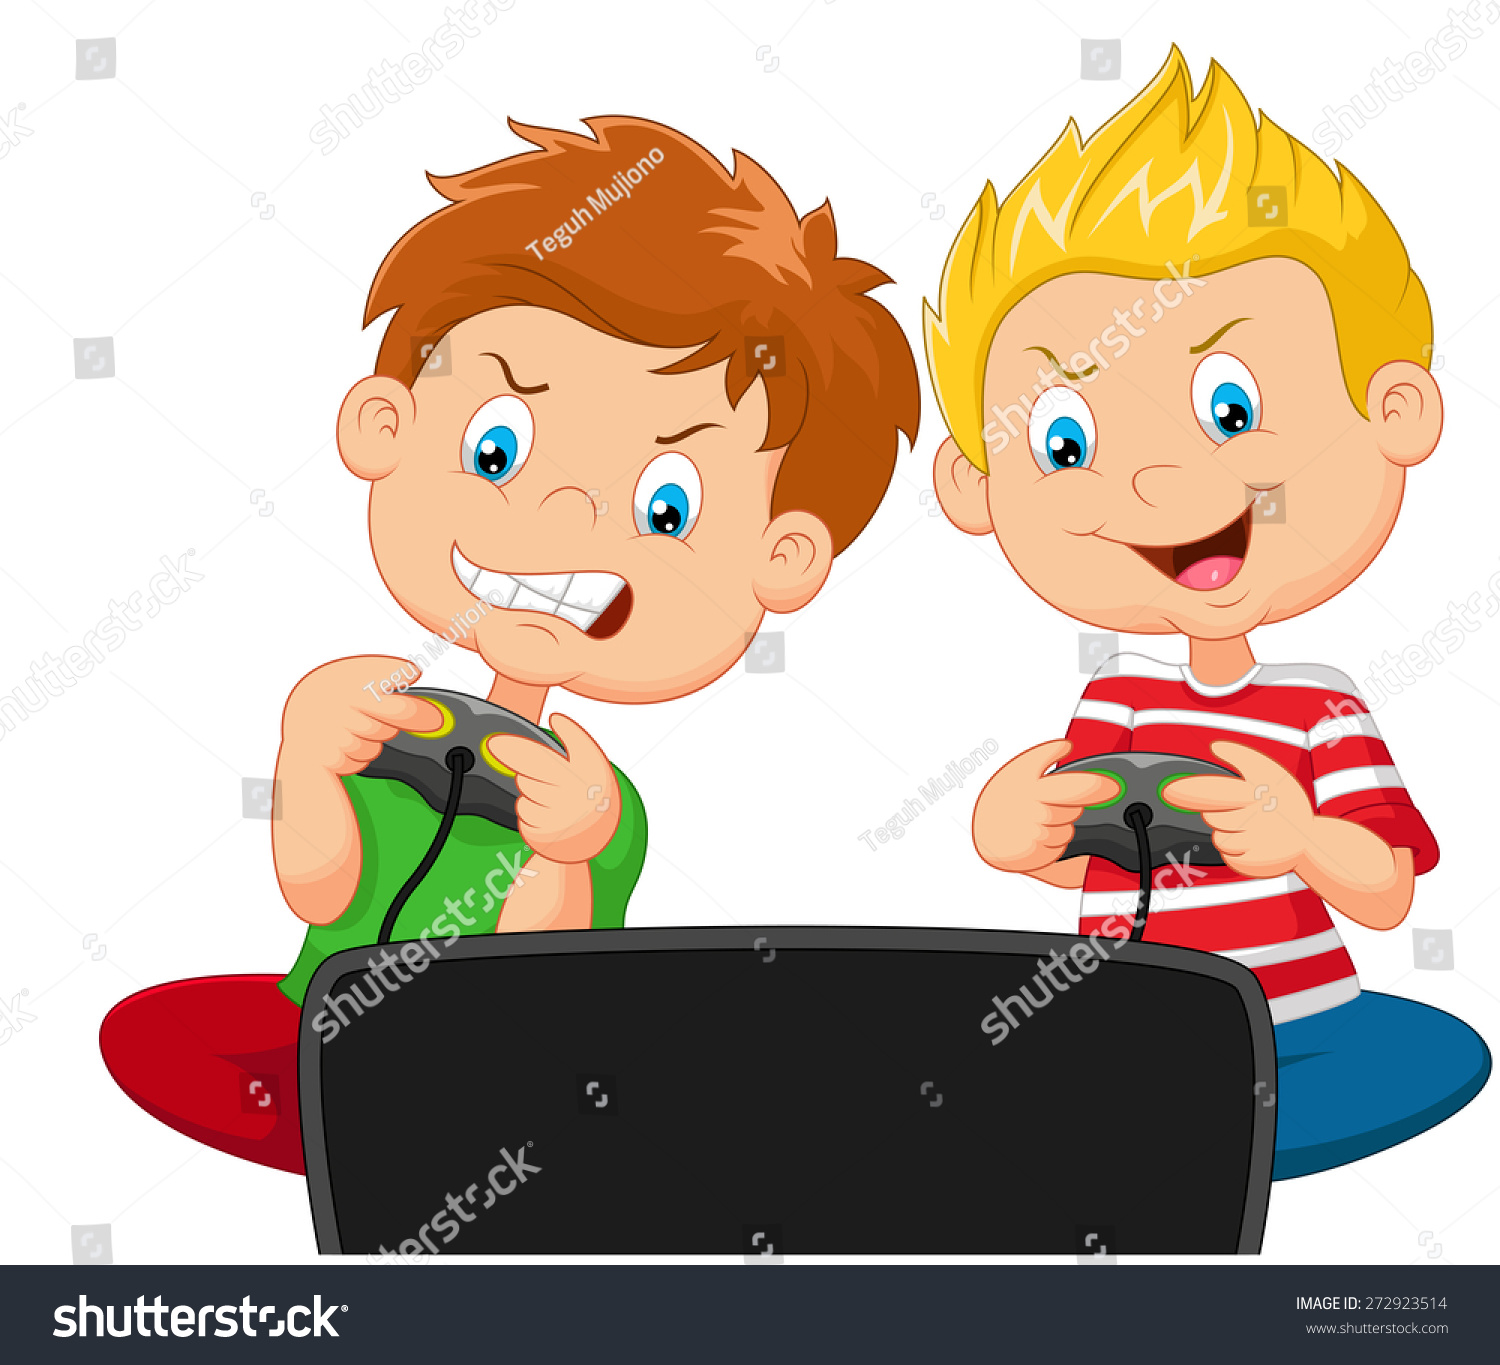 free clipart video game - photo #39